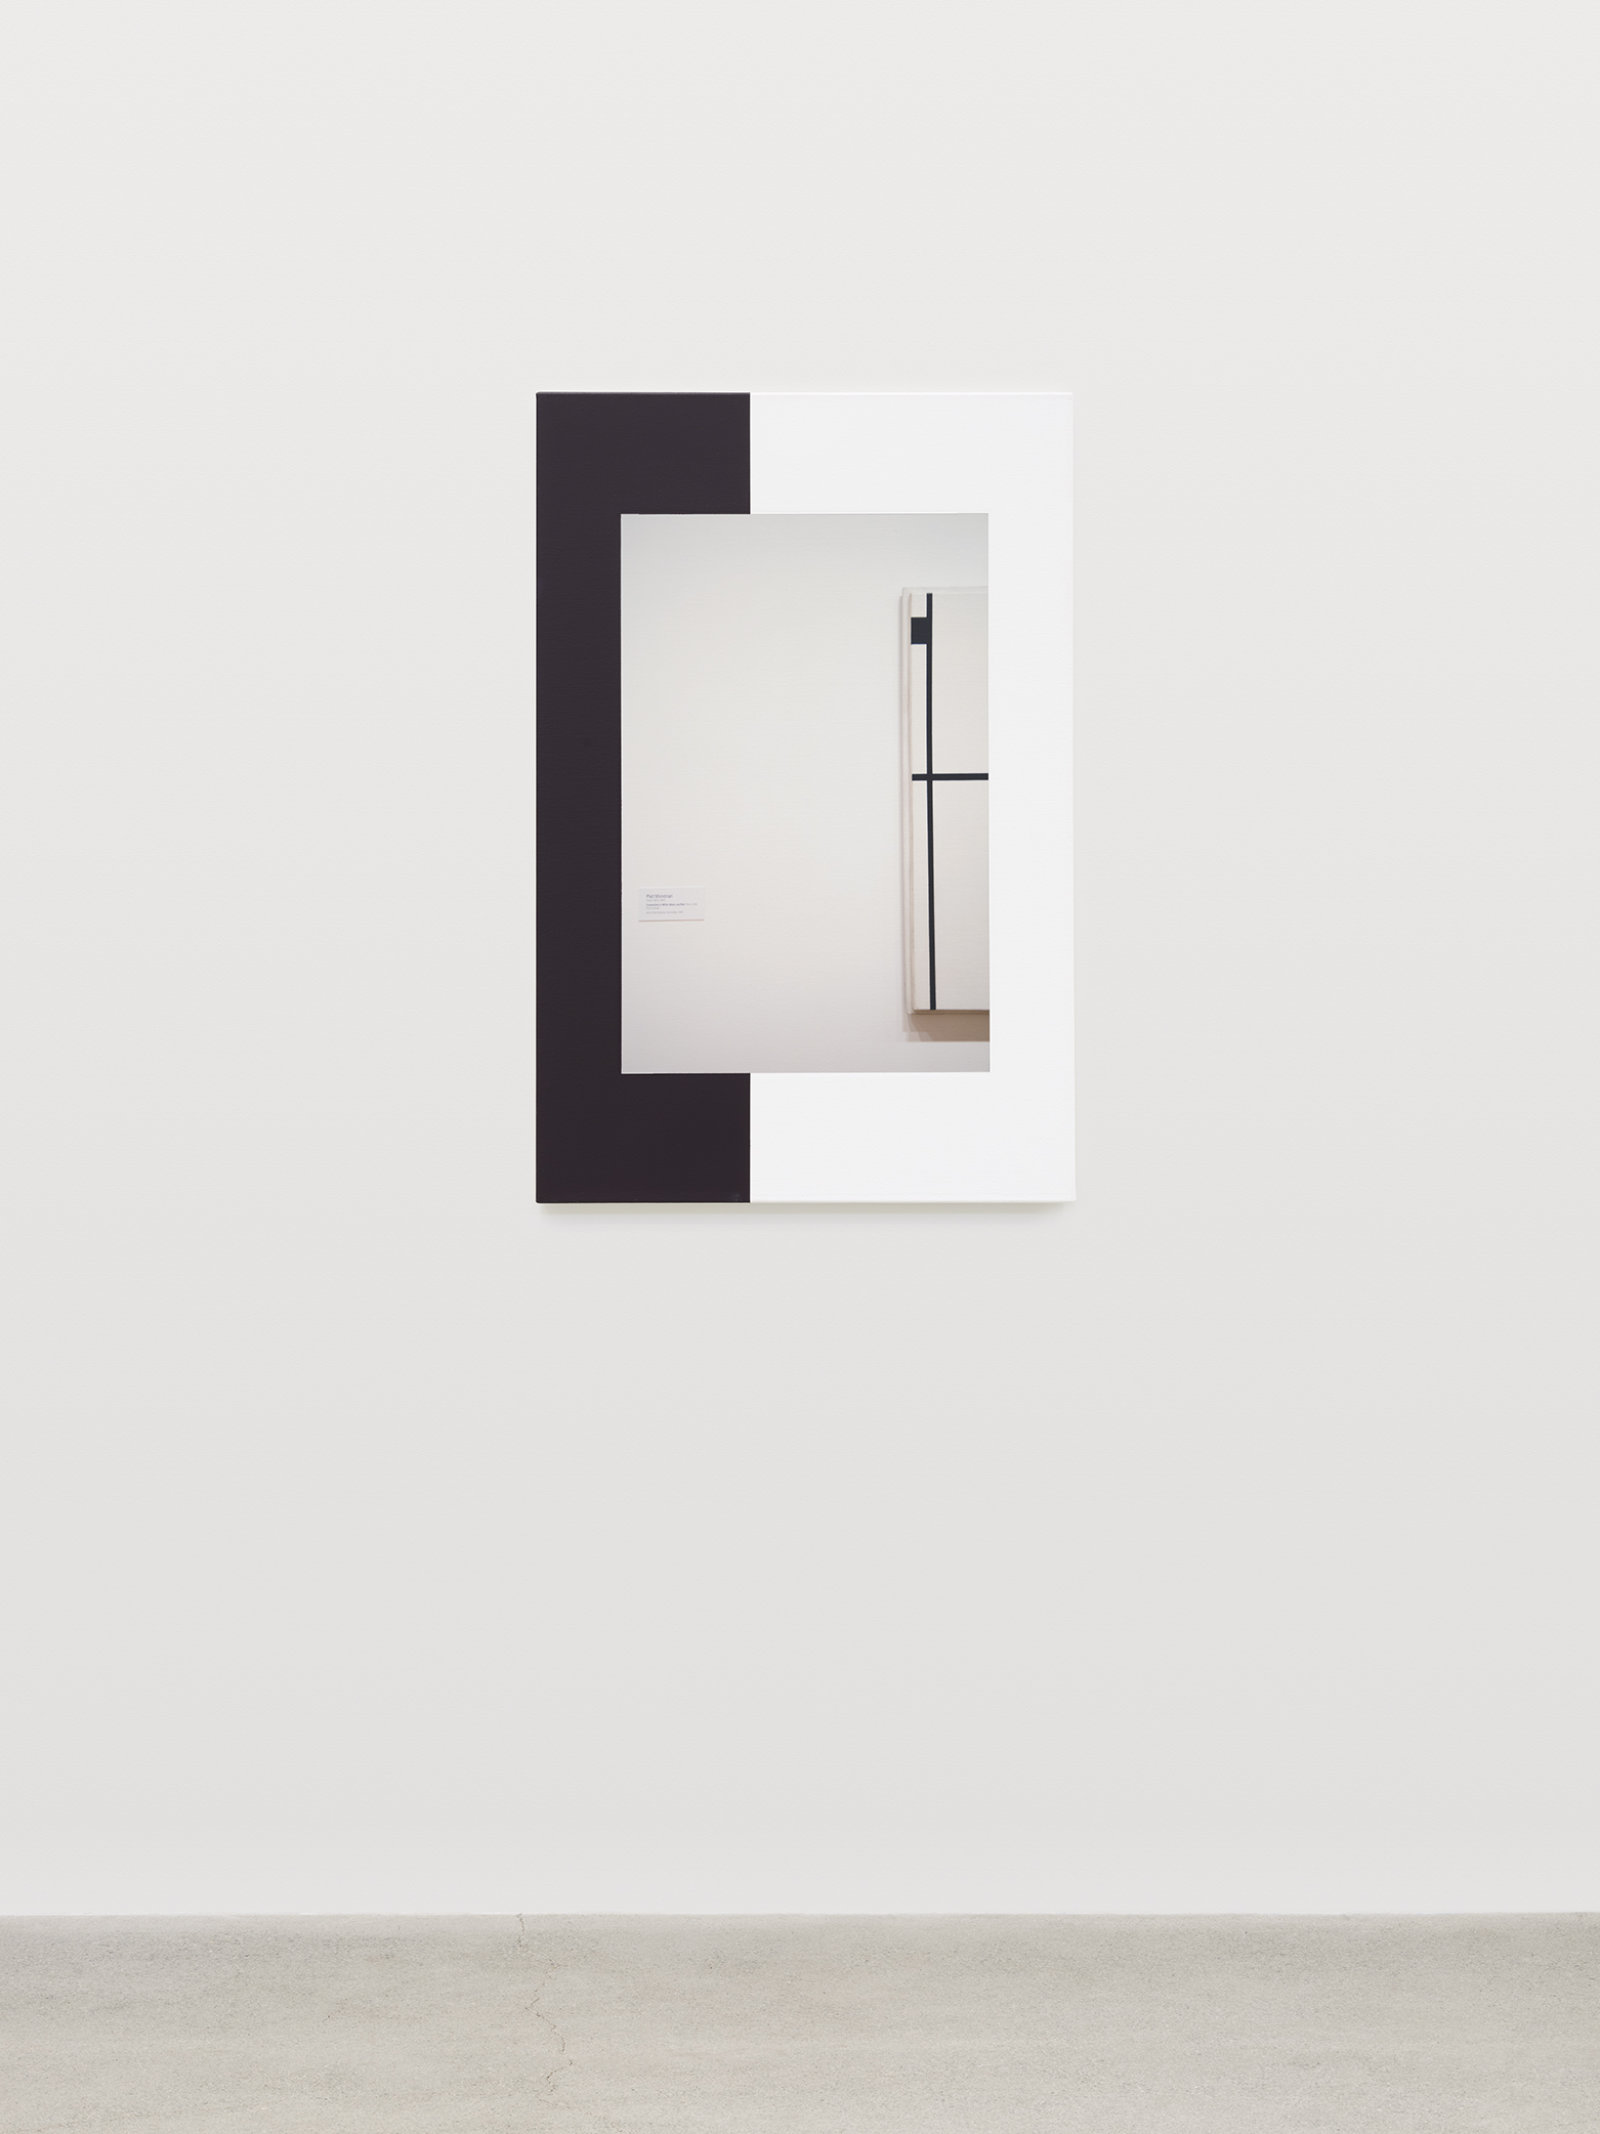 Ian Wallace, Abstract Composition (with Mondrian) IV, 2011, photolaminate with acrylic on canvas, 36 x 24 in. (91 x 61 cm)